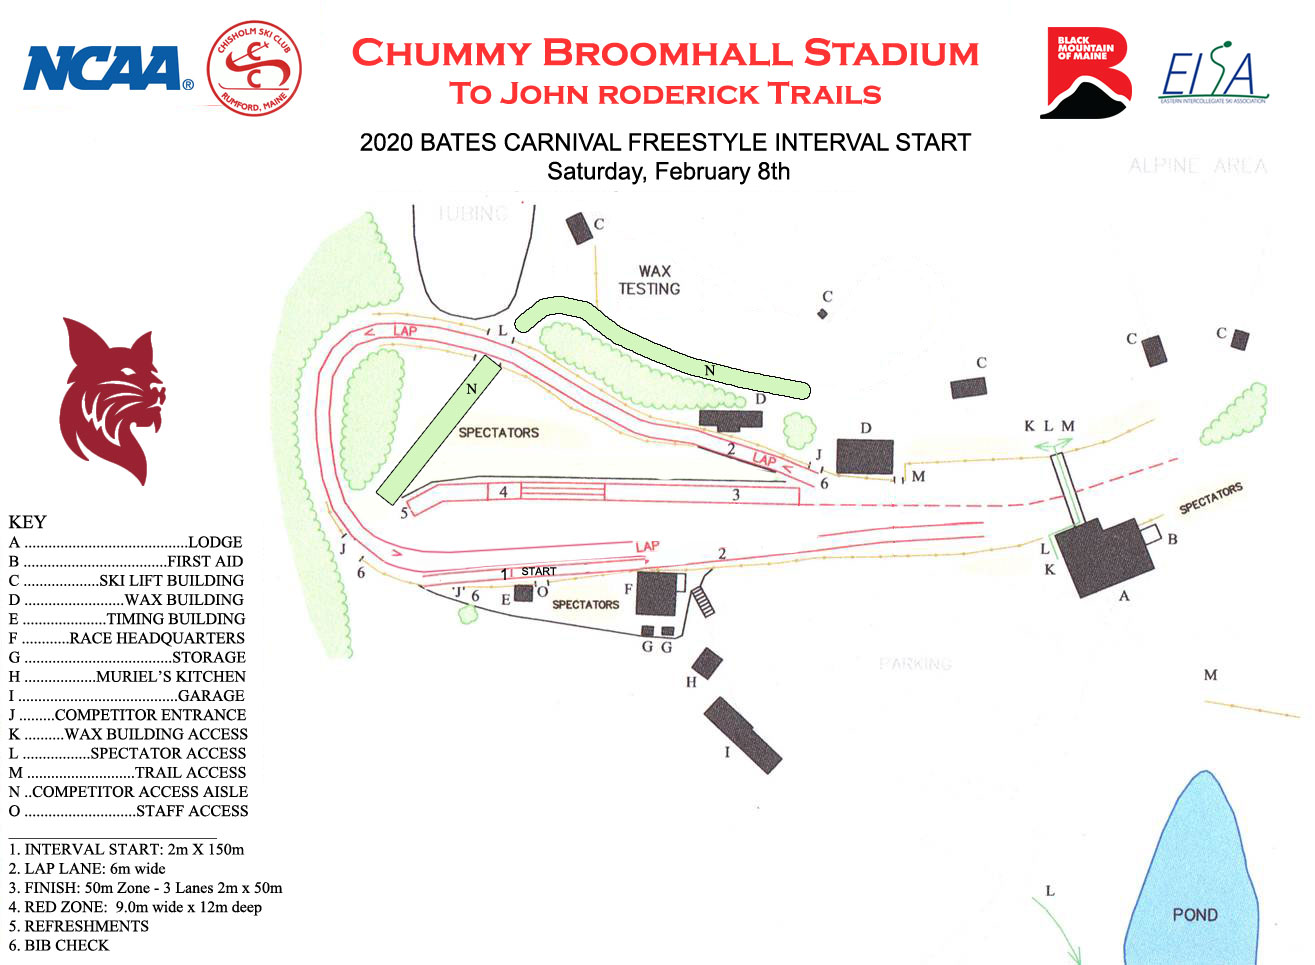 2020 Bates Carnival freestyle interval start stadium map